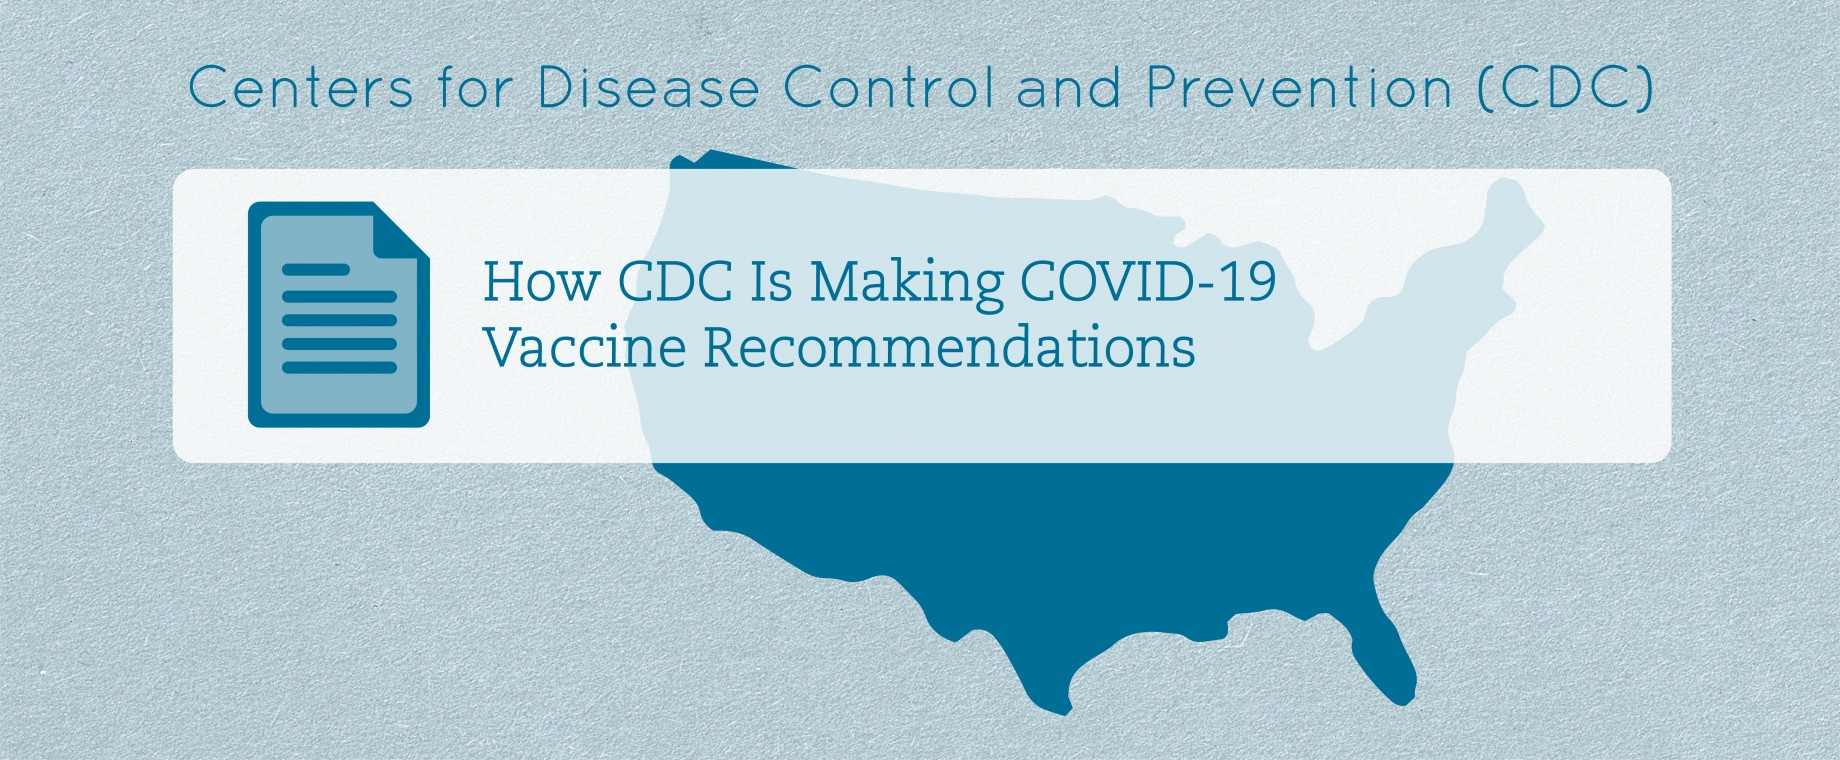 cdc-covid-vaccine-recommendations_slide.jpg